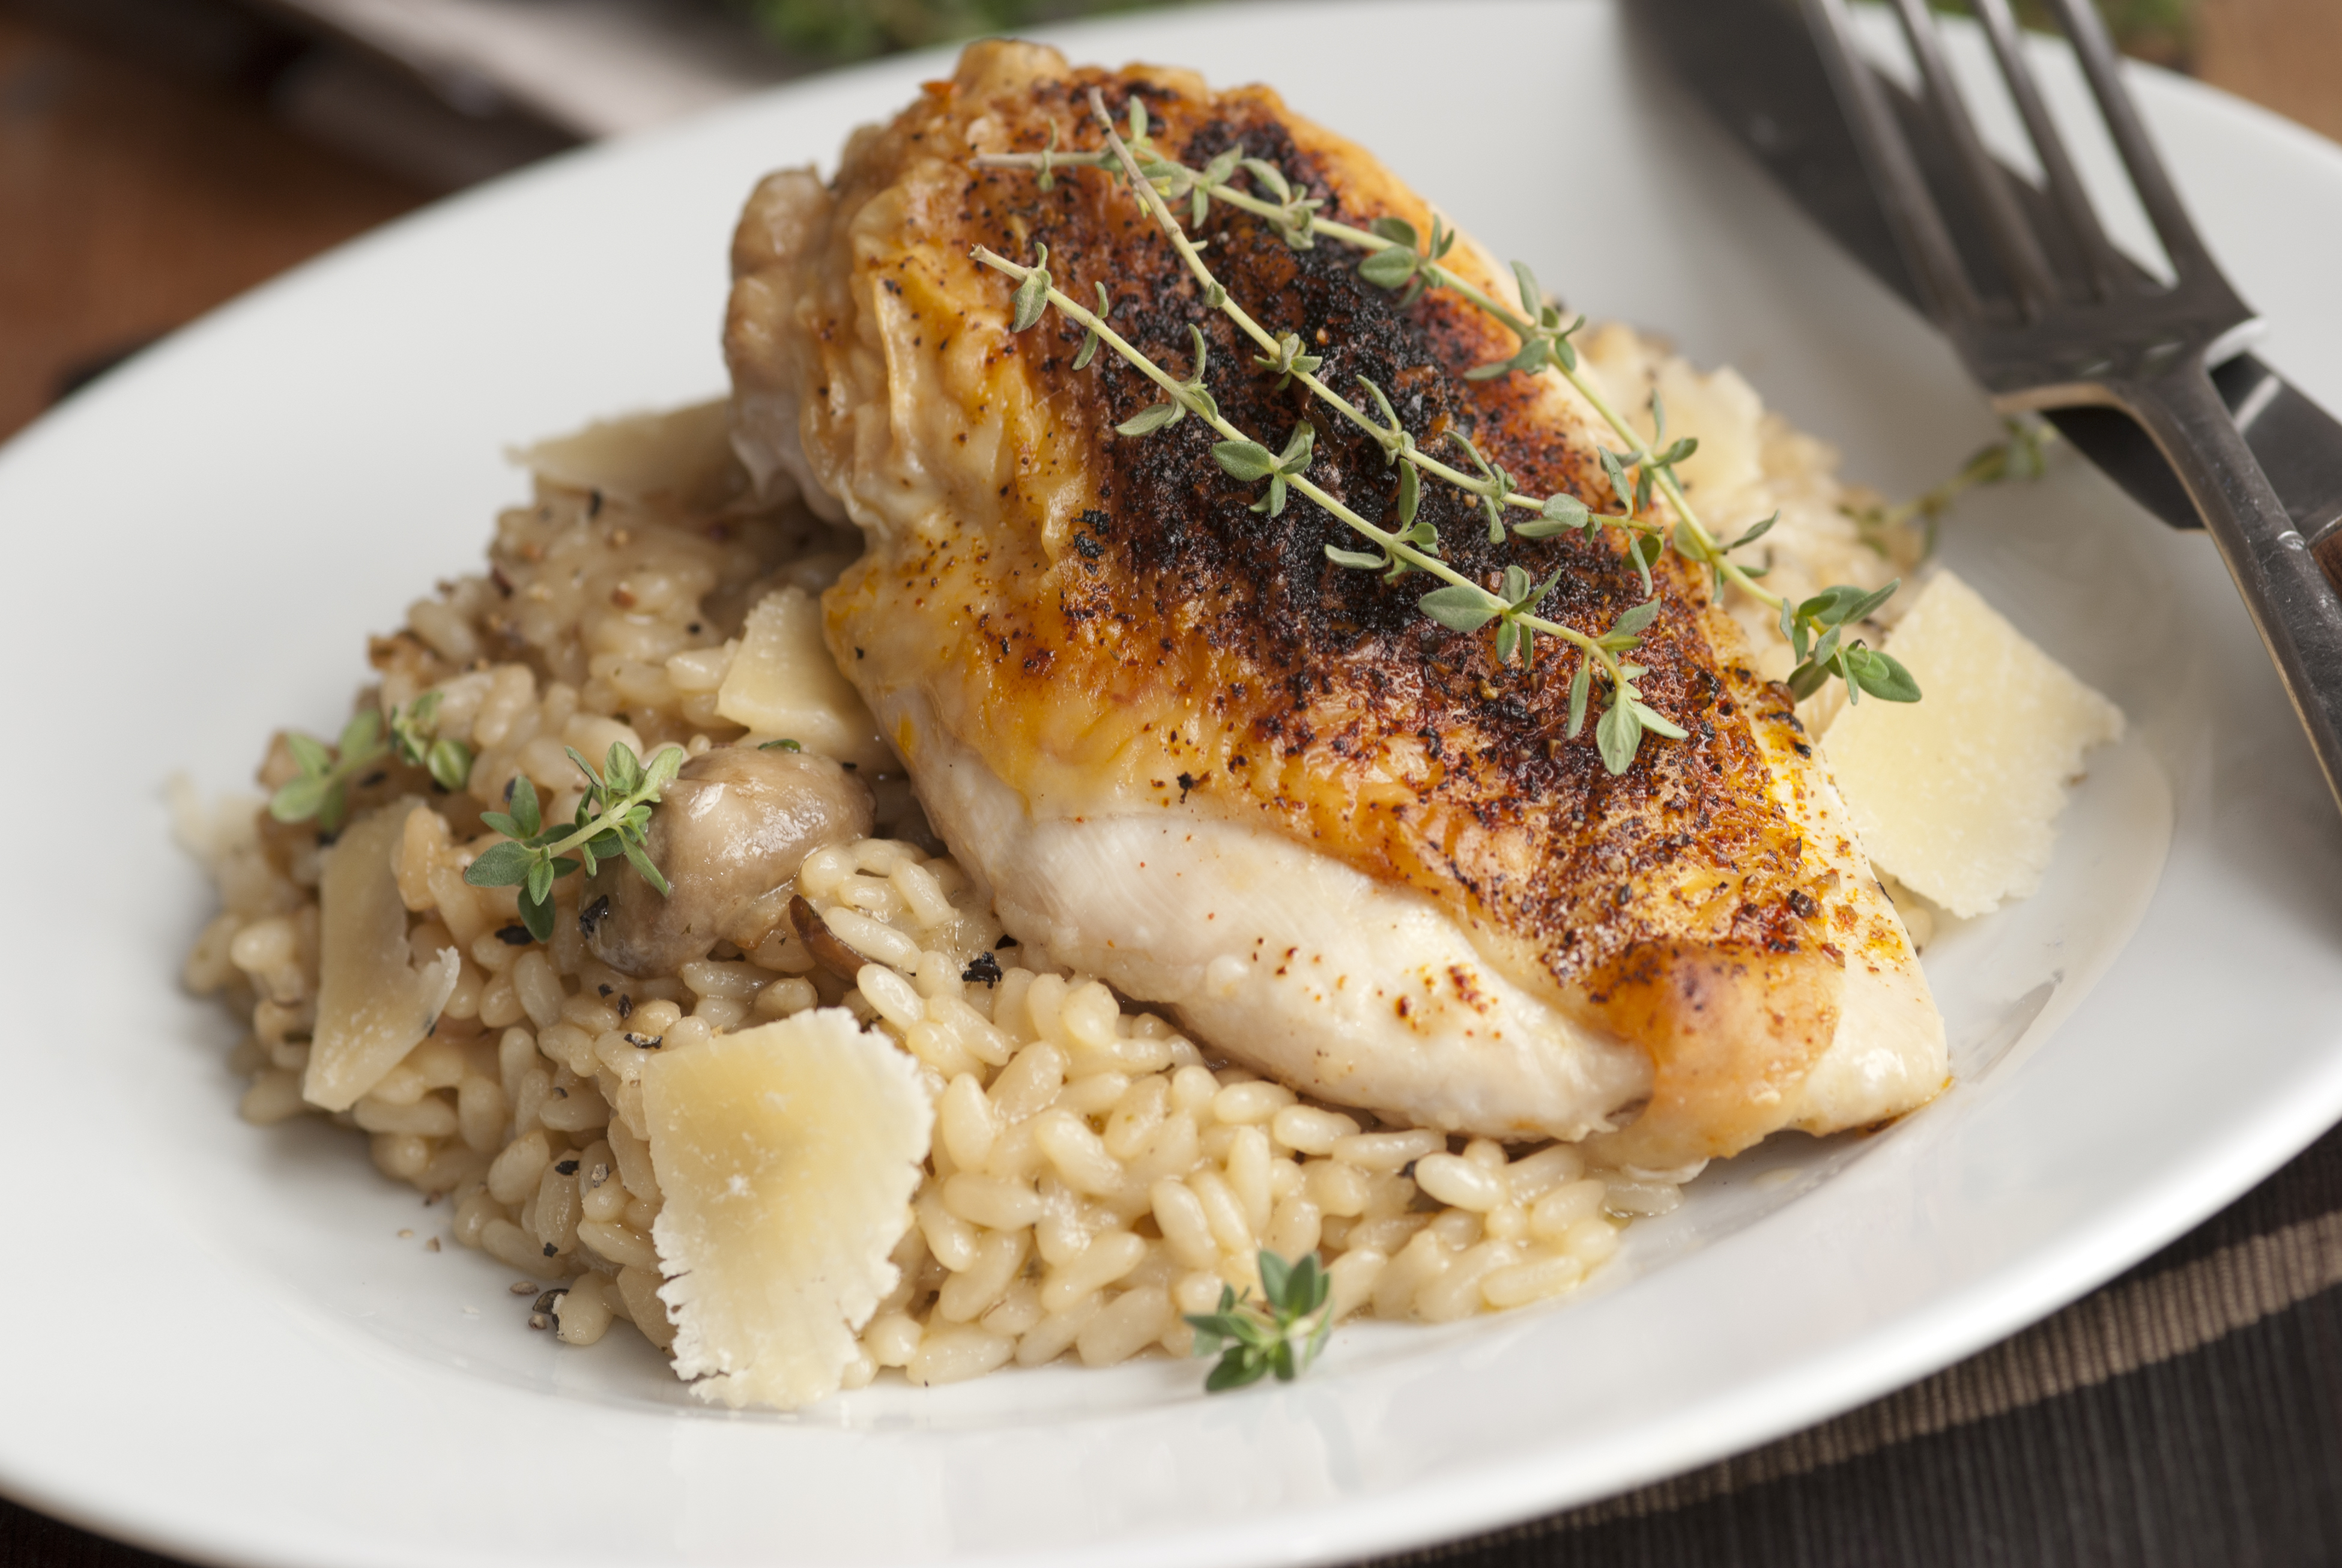 Tender and juicy Baked Chicken Breasts with a delicious honey mustard sauce takes only minutes to make! Baked Chicken Breasts couldn't be any easier to prepare for a quick and easy dinner idea! Smothered in.